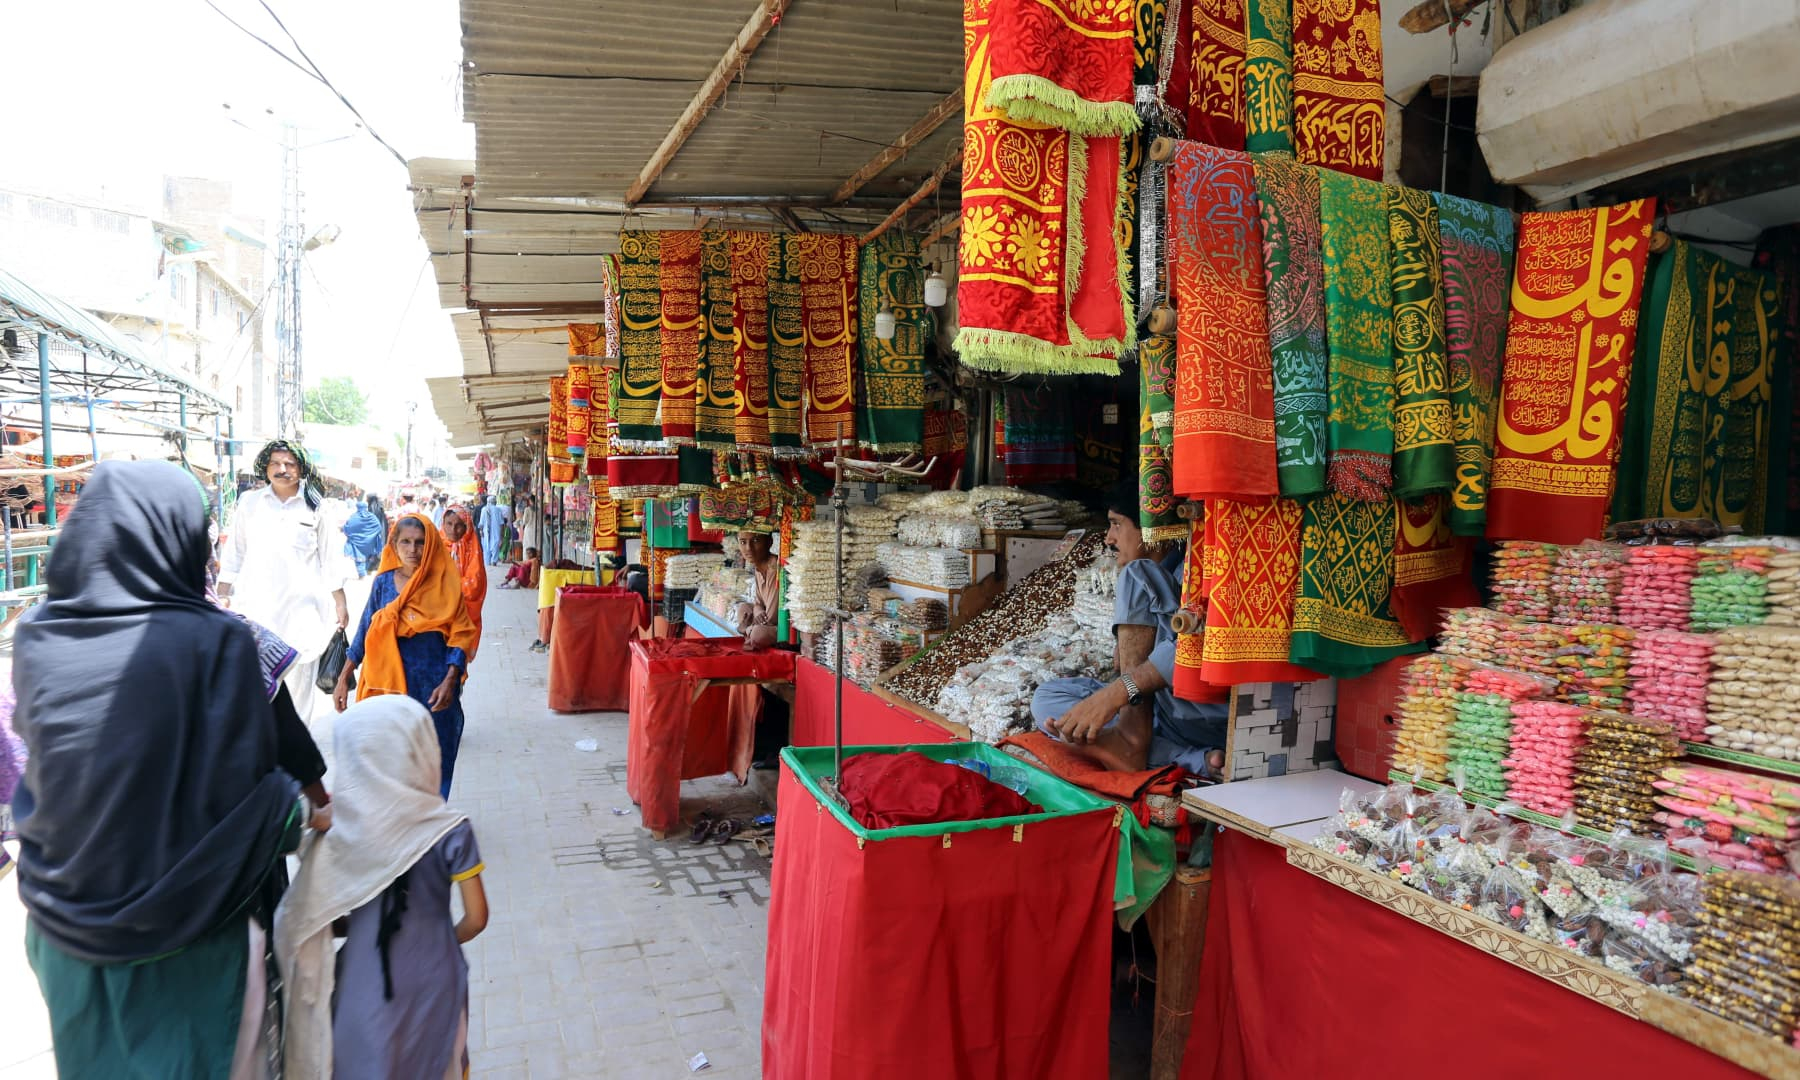 Businesses around Qalandar's shrine reopened after the lockdown was eased on August 10.